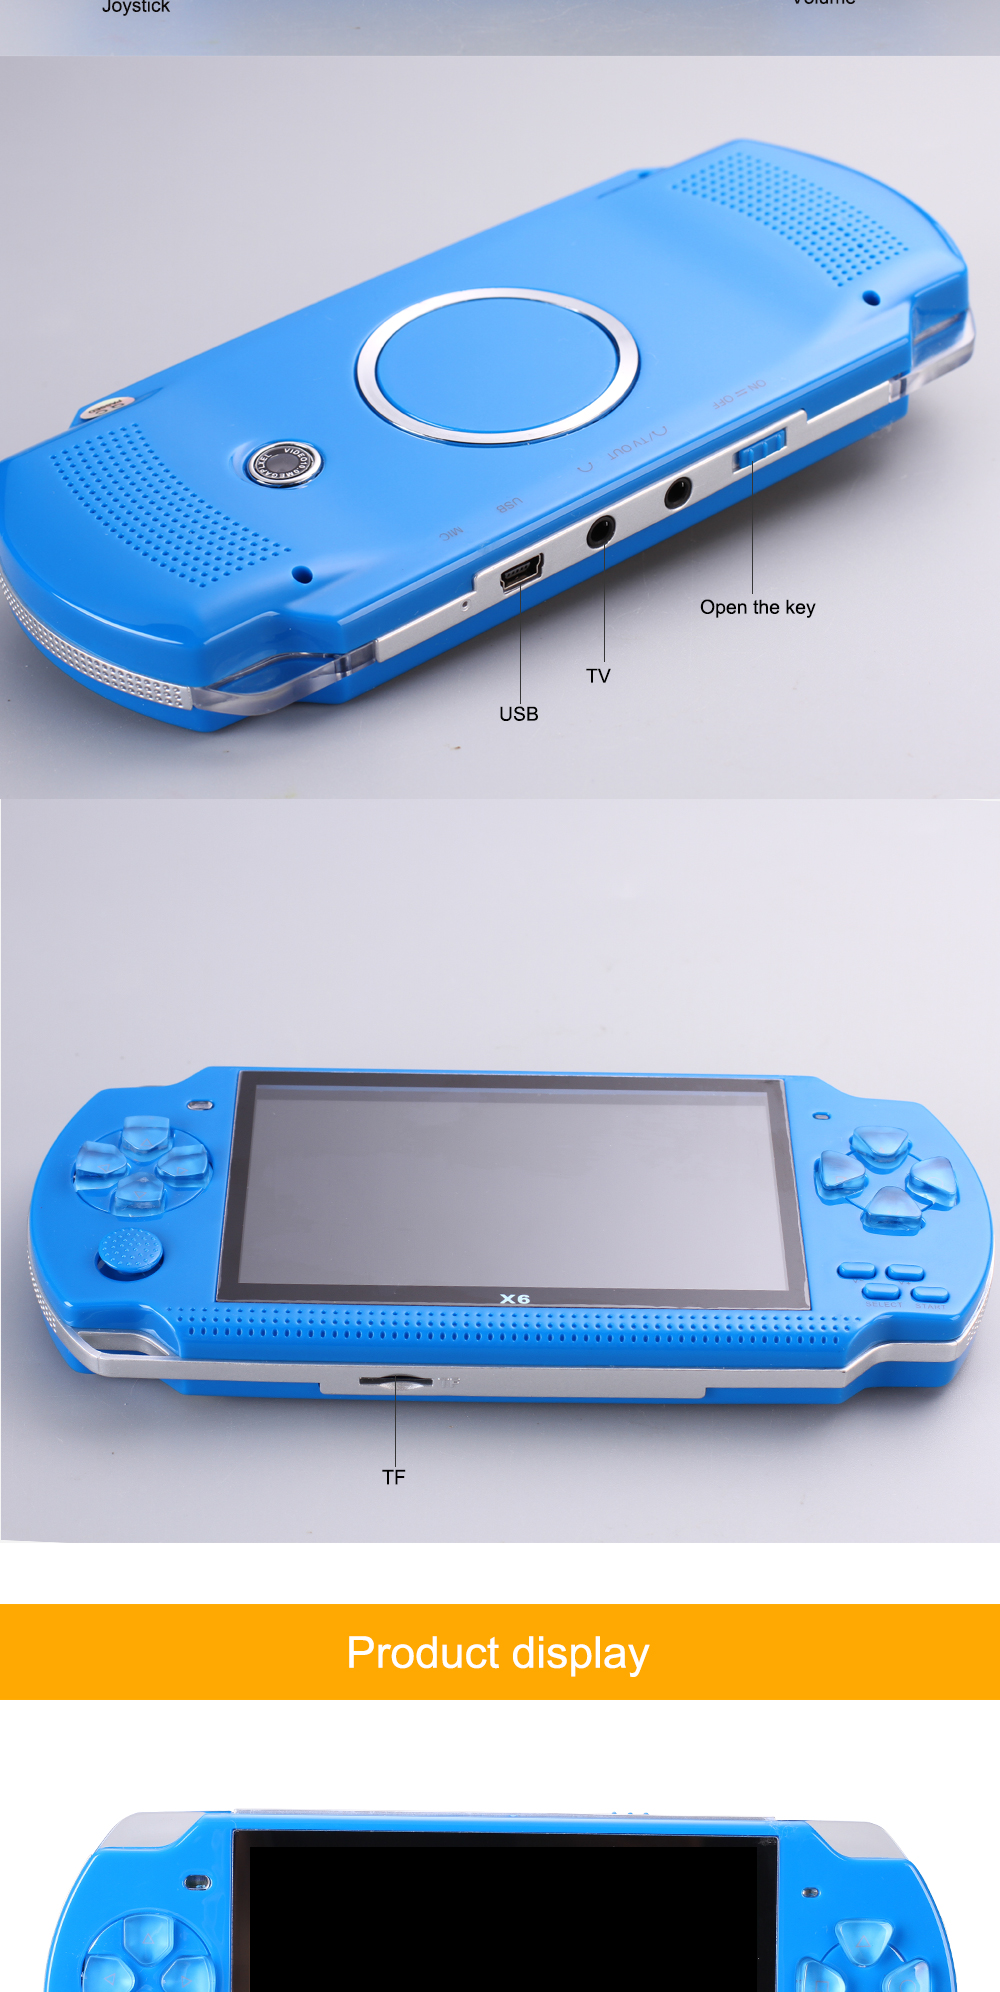 POWKIDDY Portable Handheld Game Players 8G 4.3 inch mp4 player Video Game Console Free Games Camera Recording Gaming Consoles